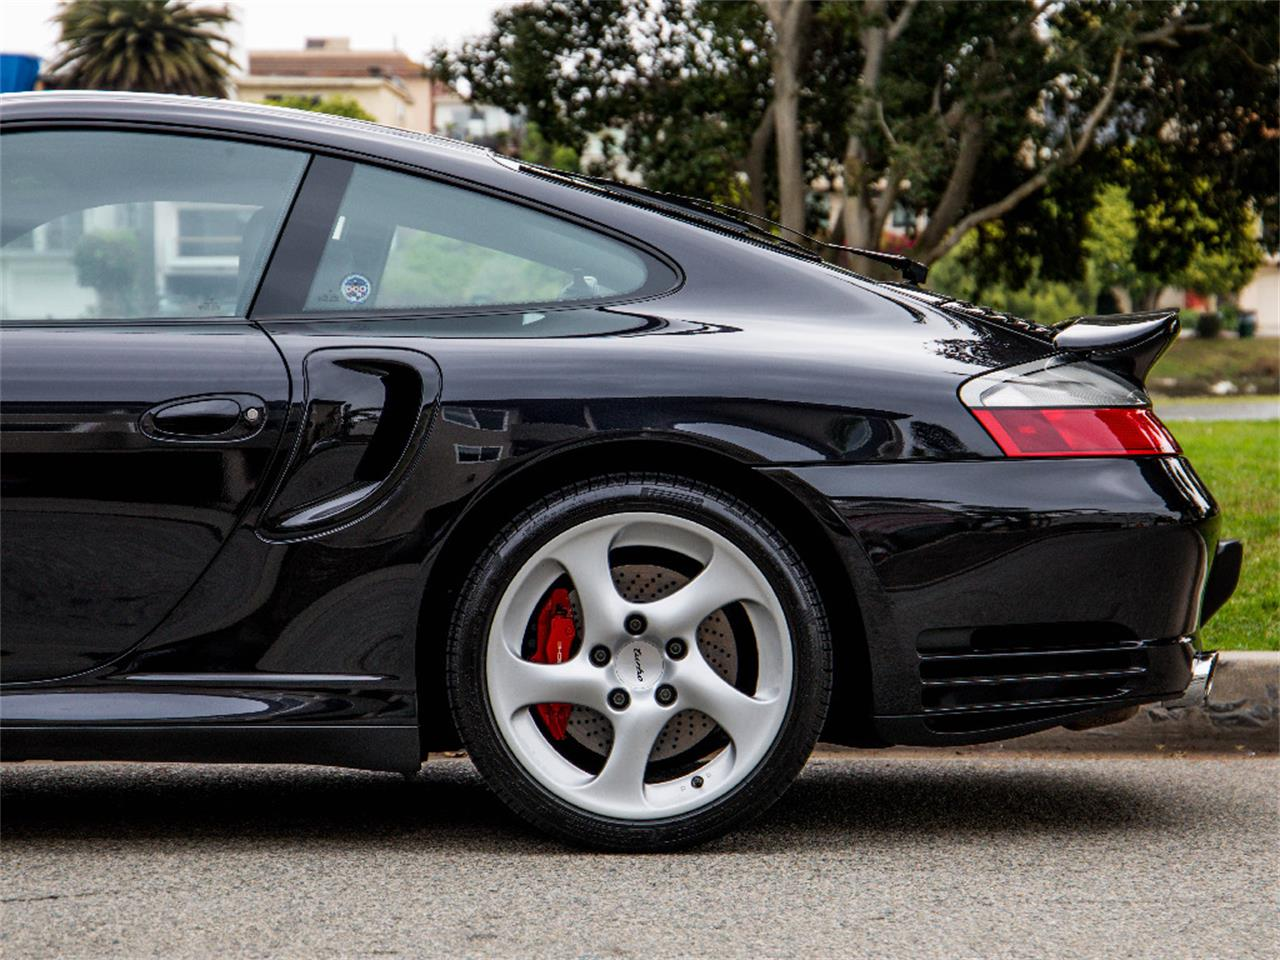 Large Picture of 2002 Porsche 911 Turbo - $74,500.00 Offered by Chequered Flag International - NVVR